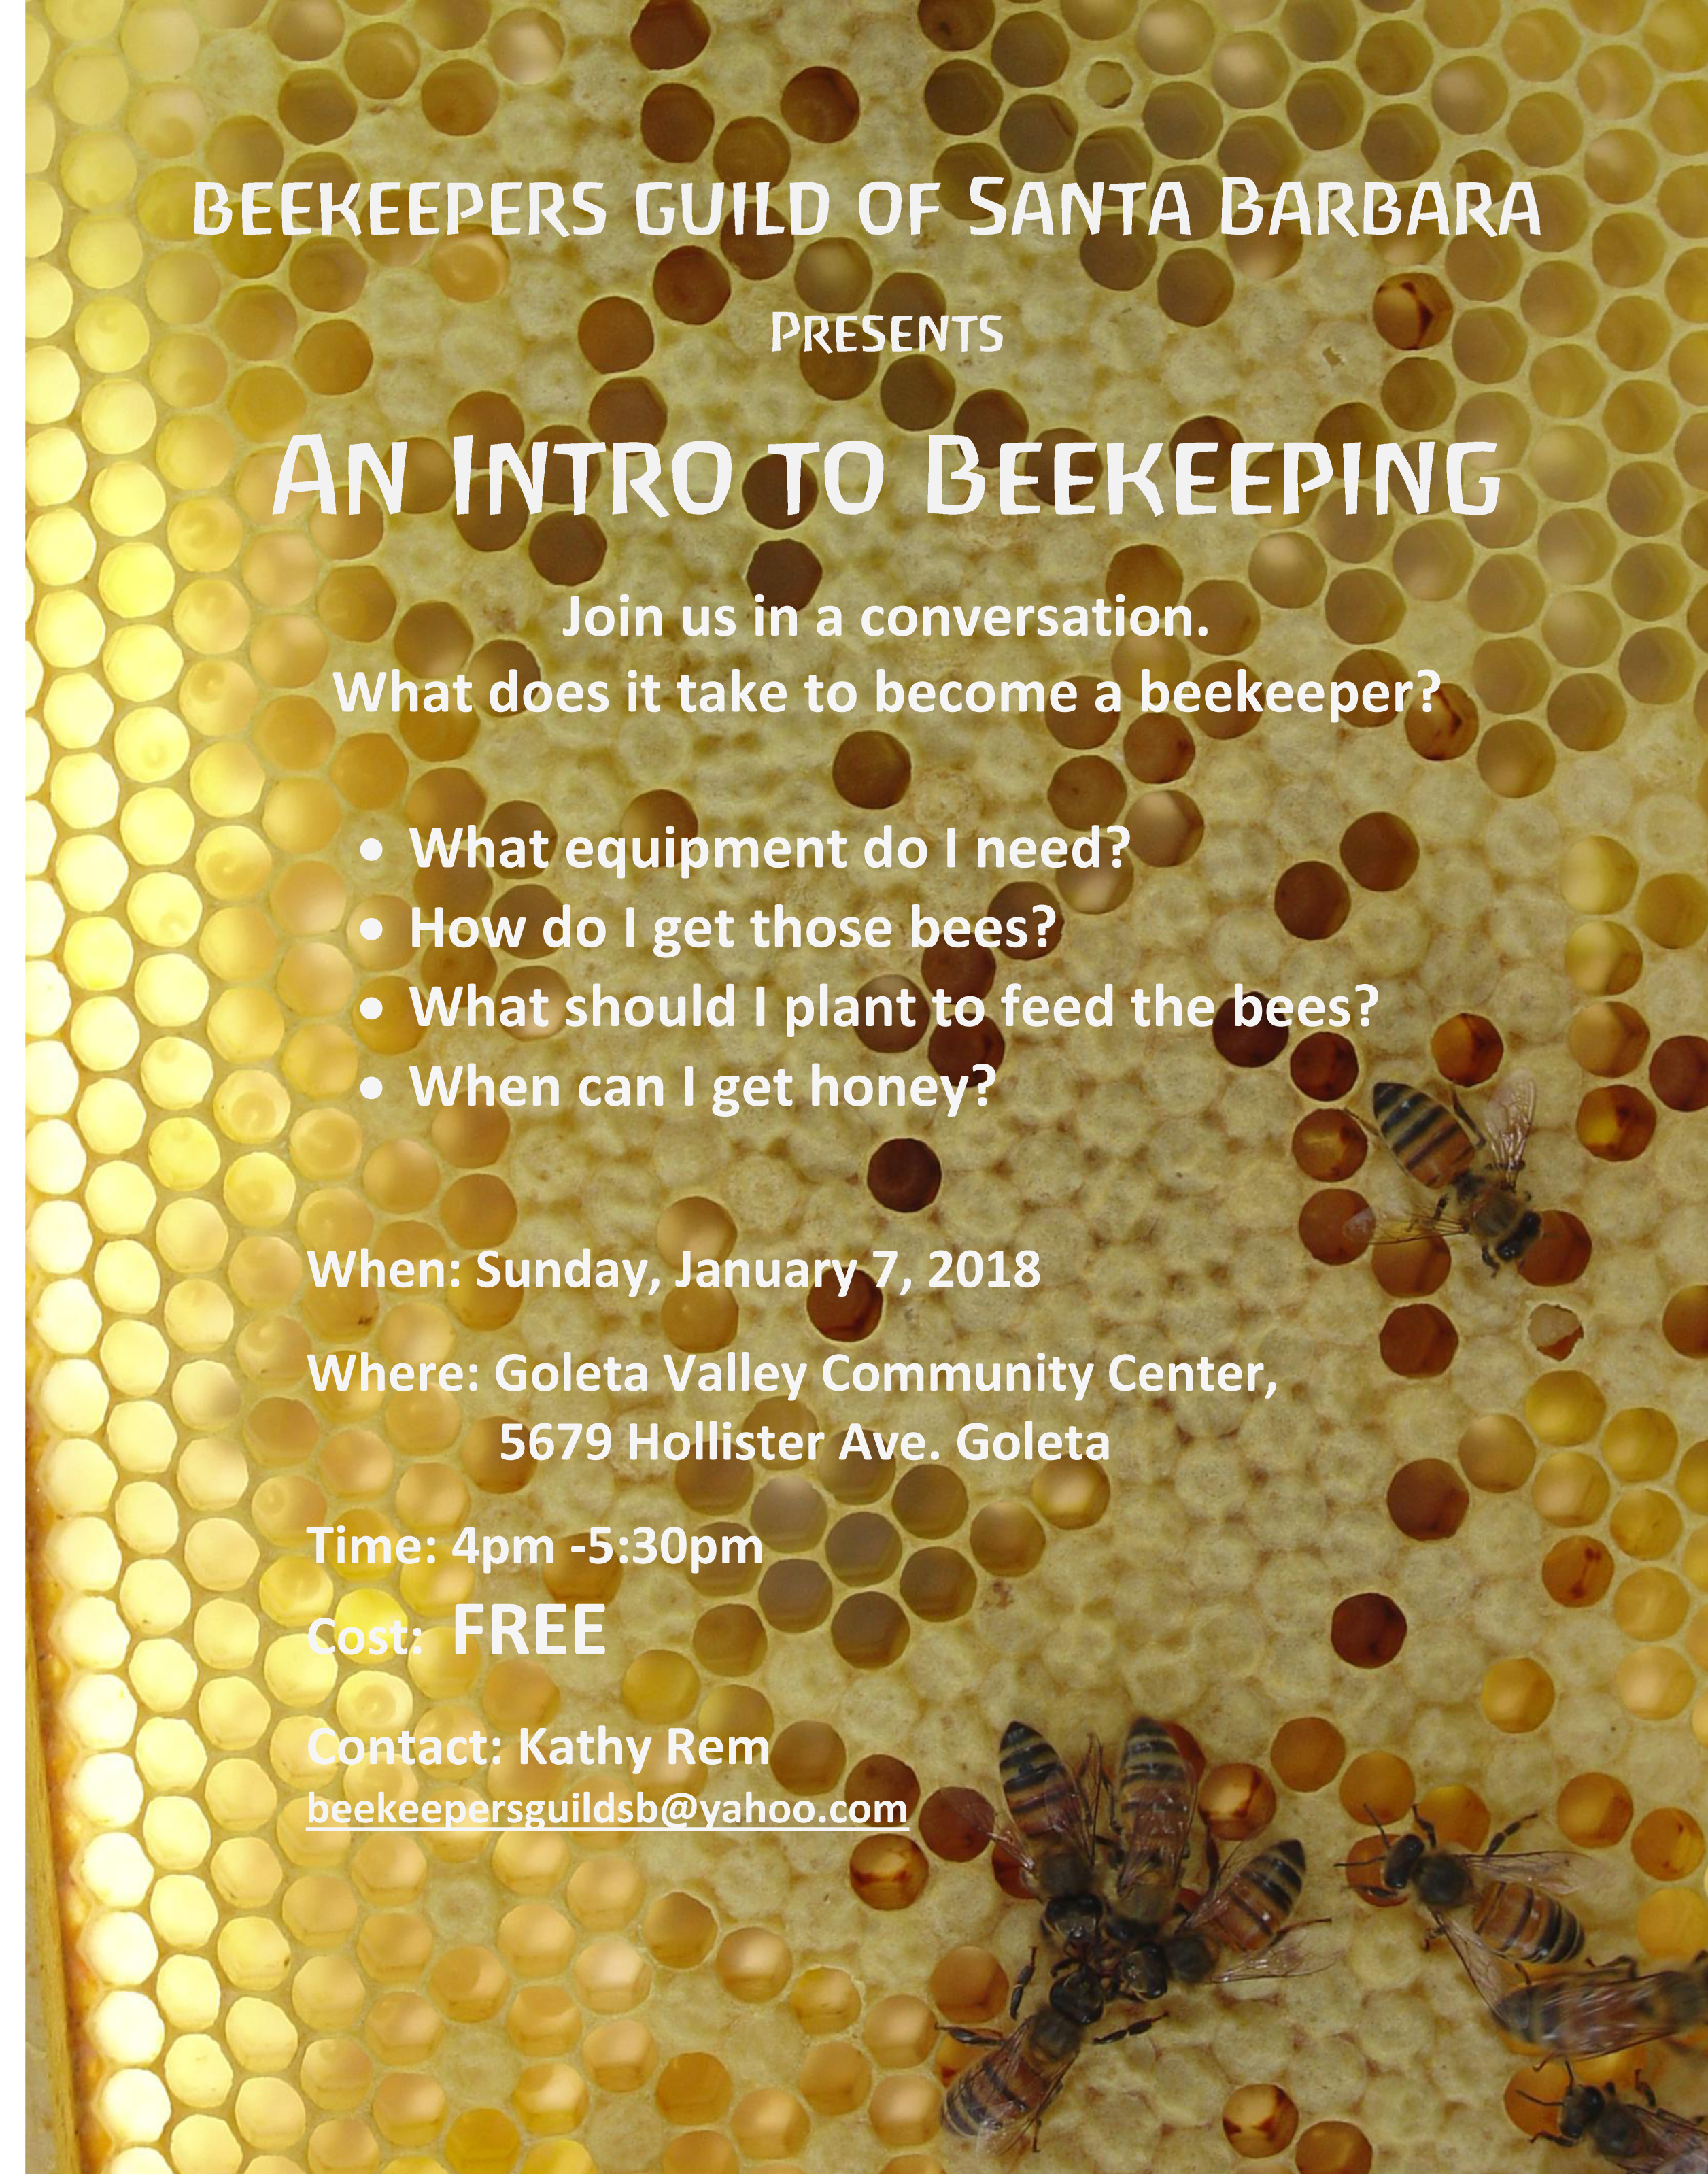 An Intro to Beekeeping